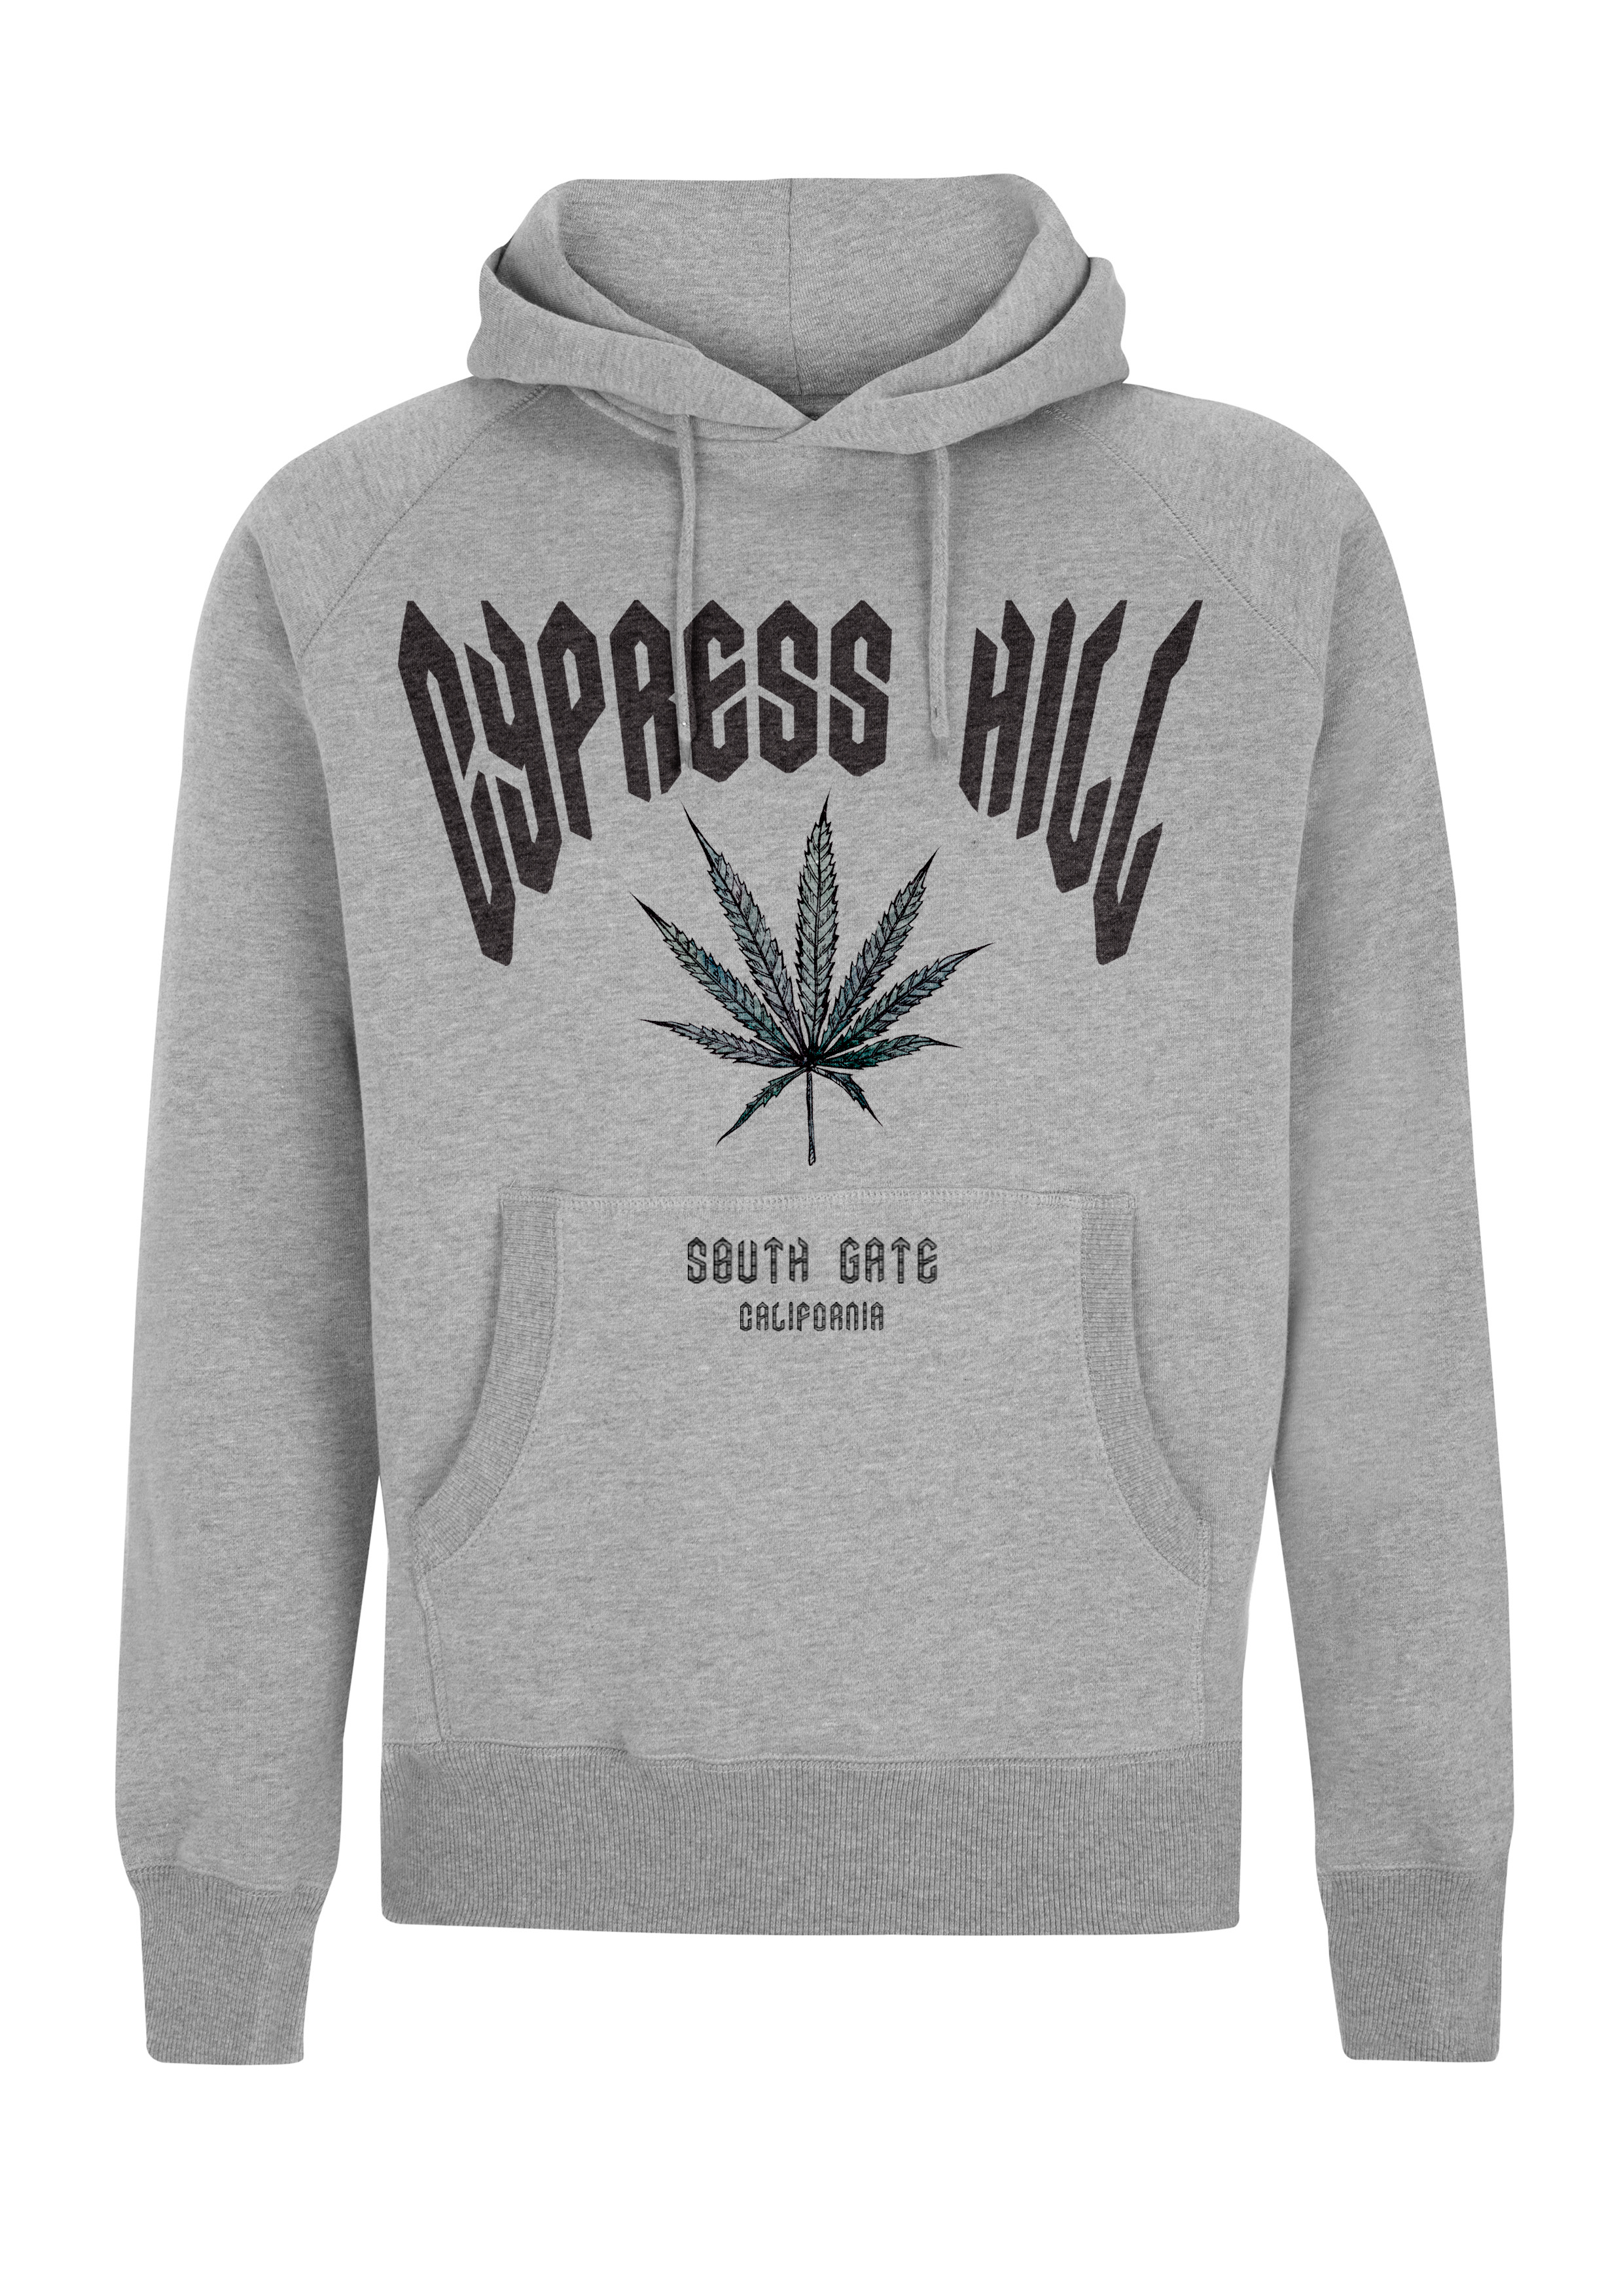 South Gate Grey Pullover Hood - Cypress Hill